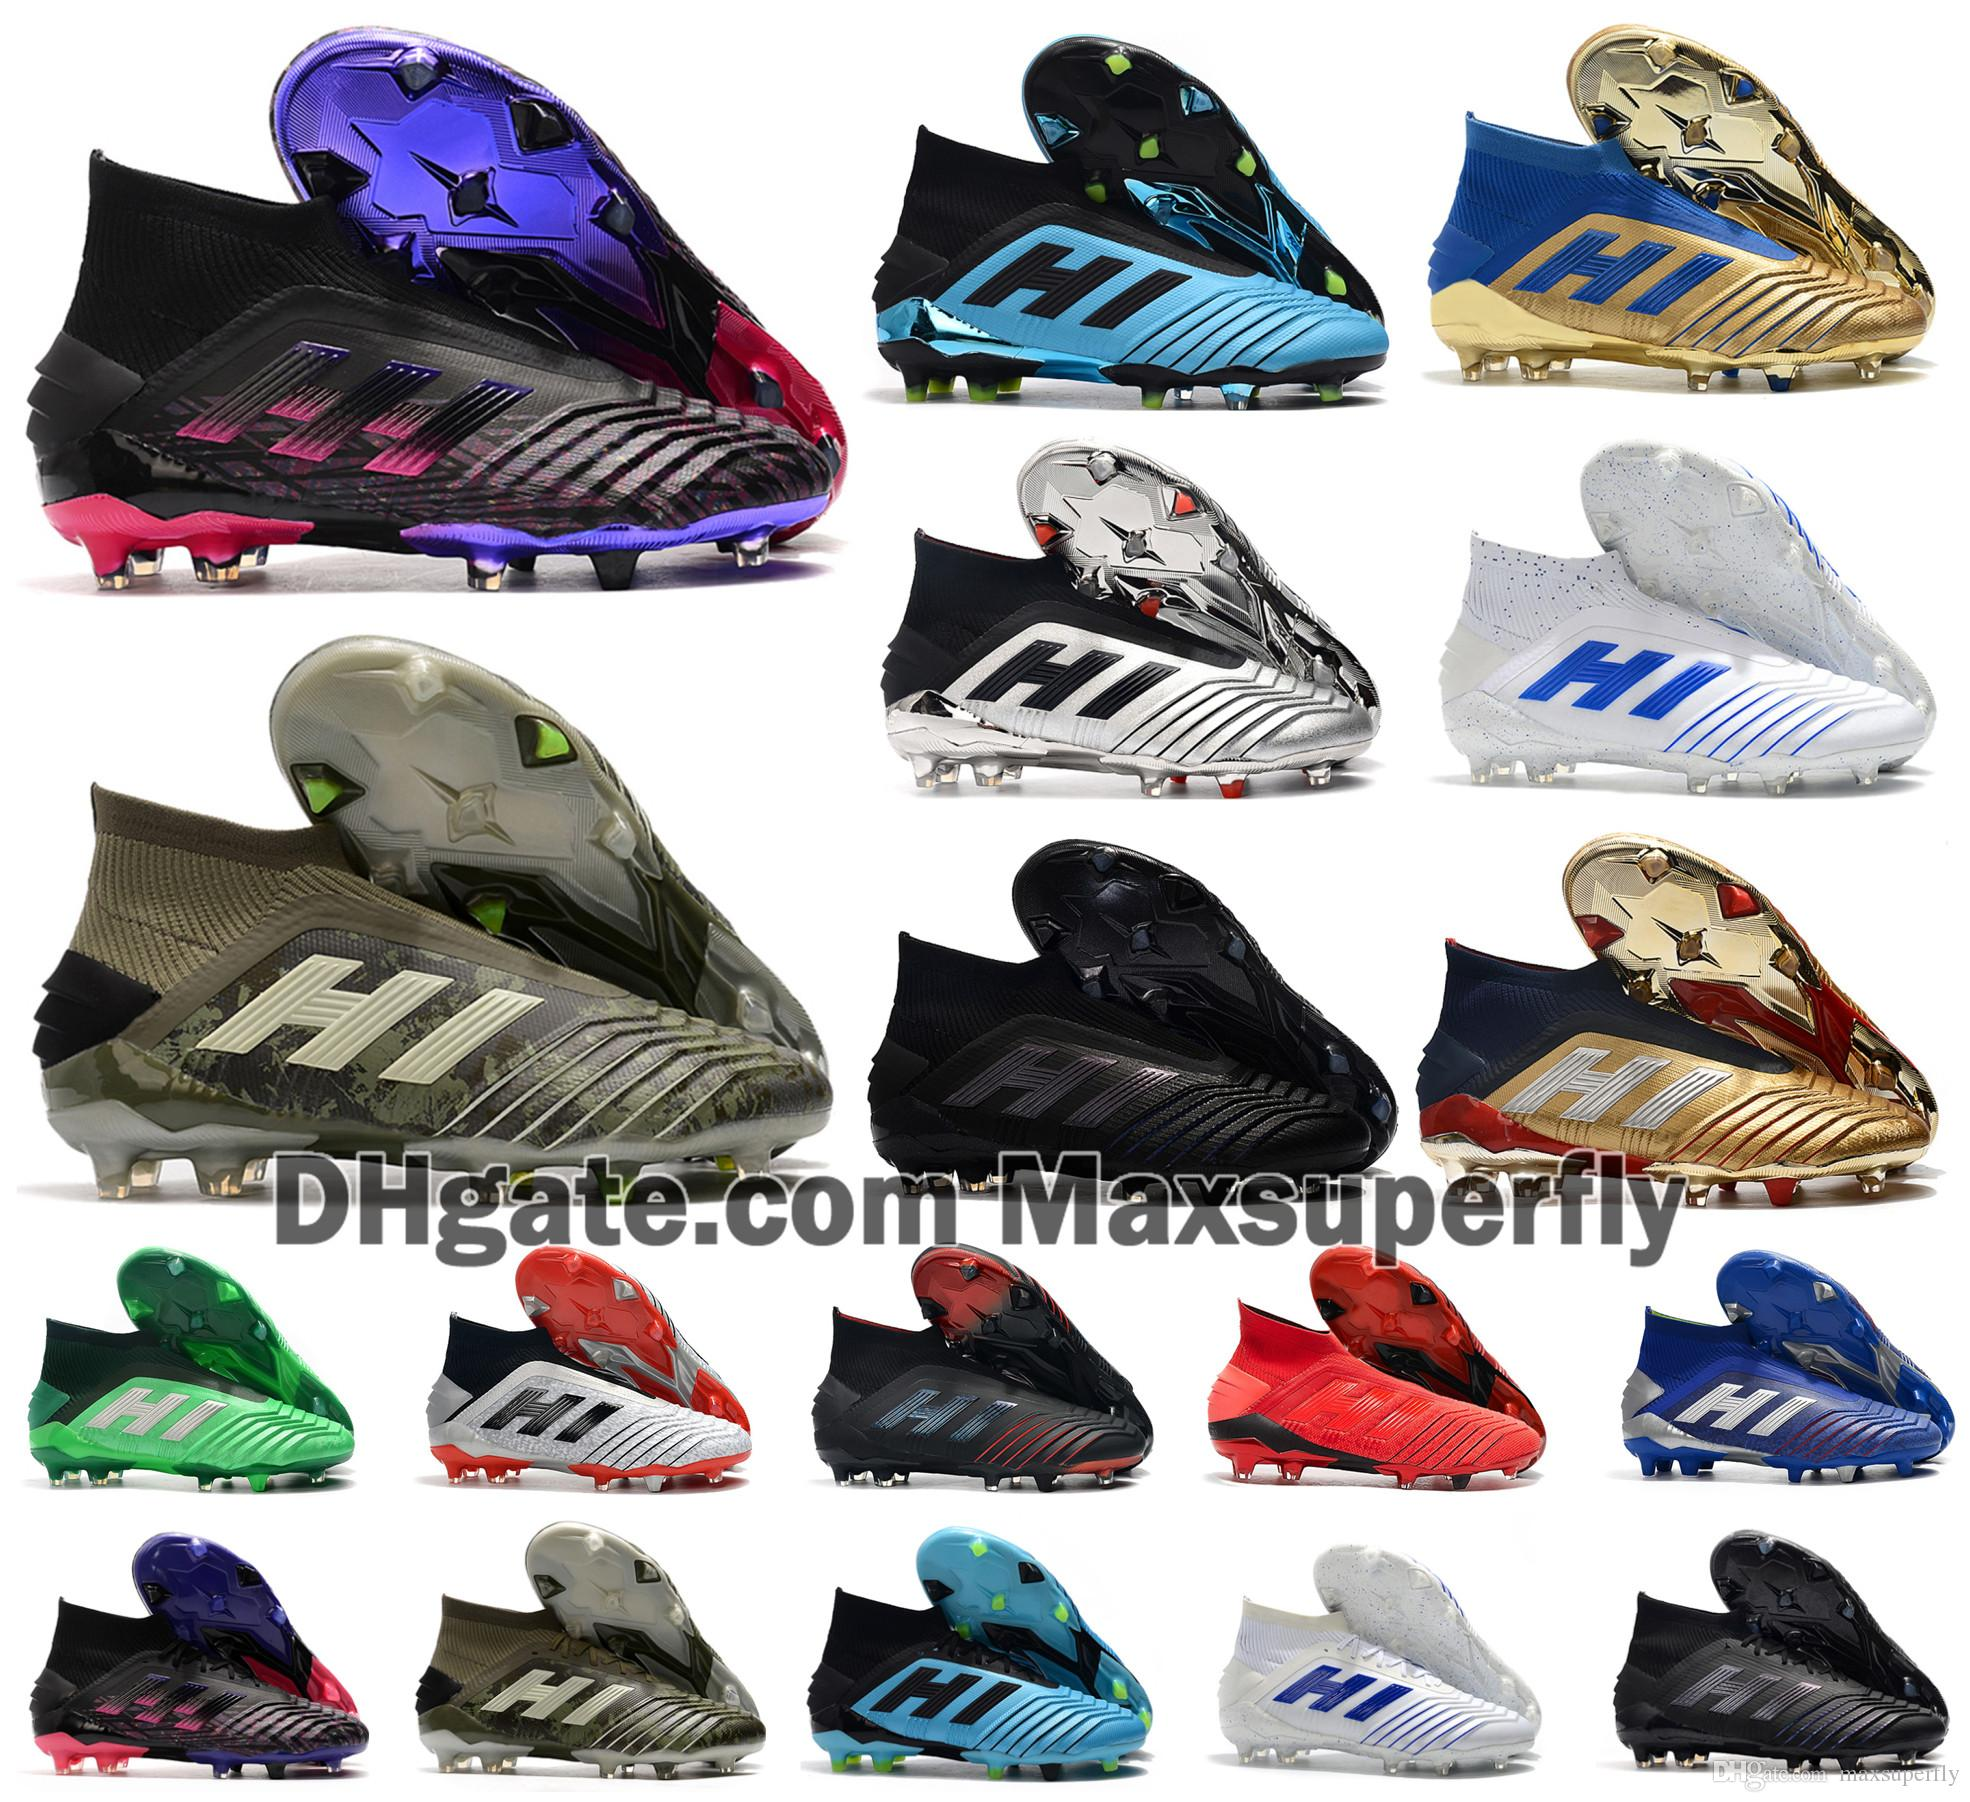 2020 Hot Predator 19+ 19.1 FG PP Paul Pogba Season 6 6th Encryption Code Mens Boys Soccer Football Shoes 19+x Cleats Boots Cheap Size 39-45